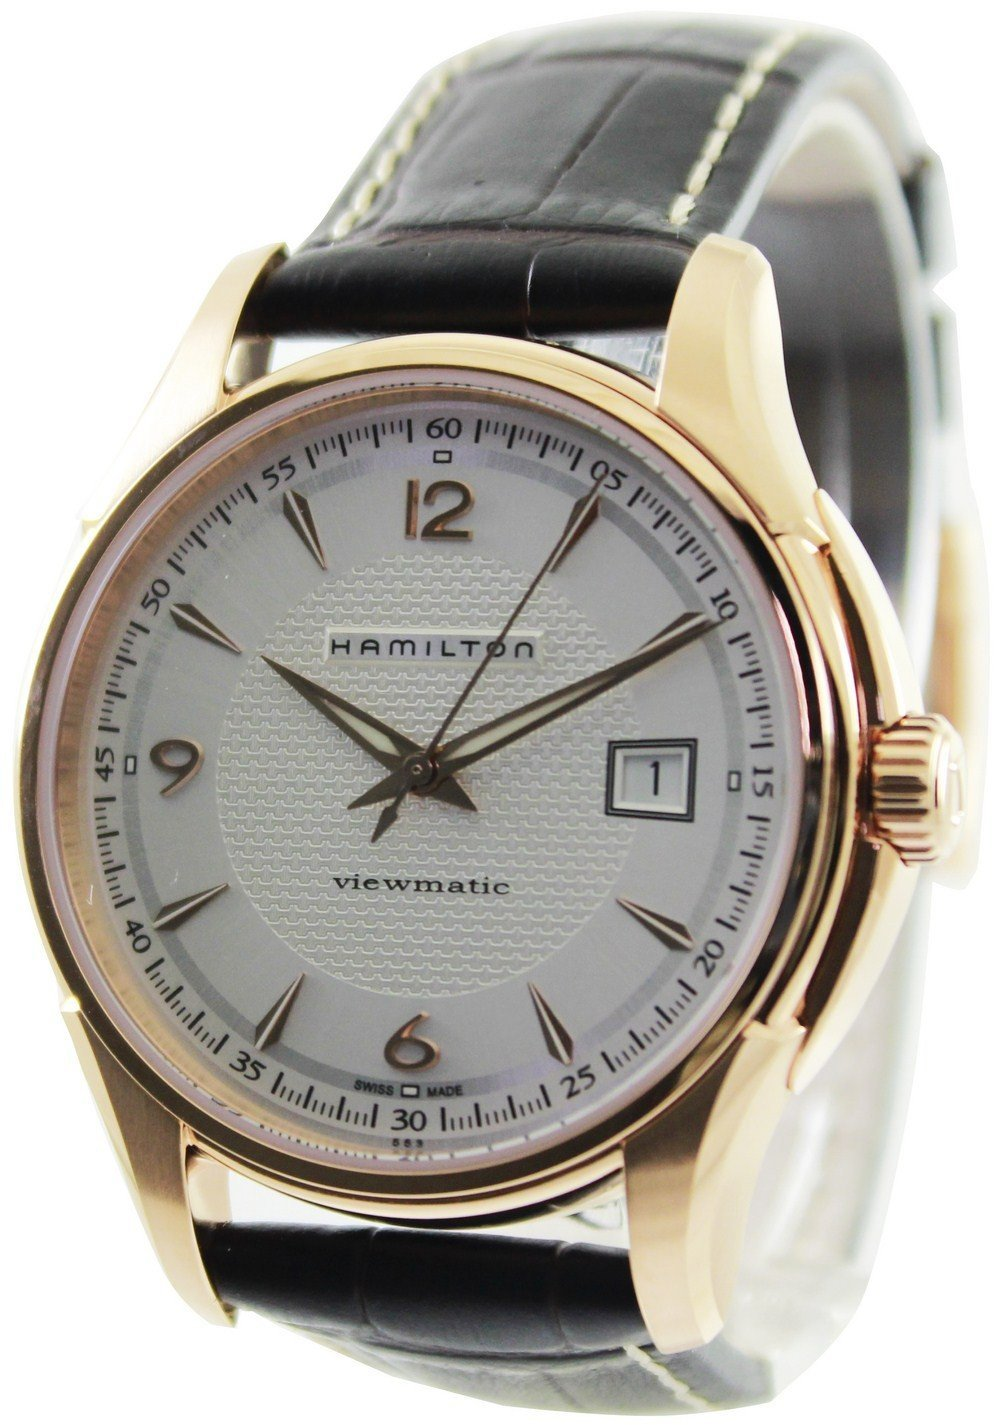 Hamilton Viewmatic Automatic H32645555 Men's Watch